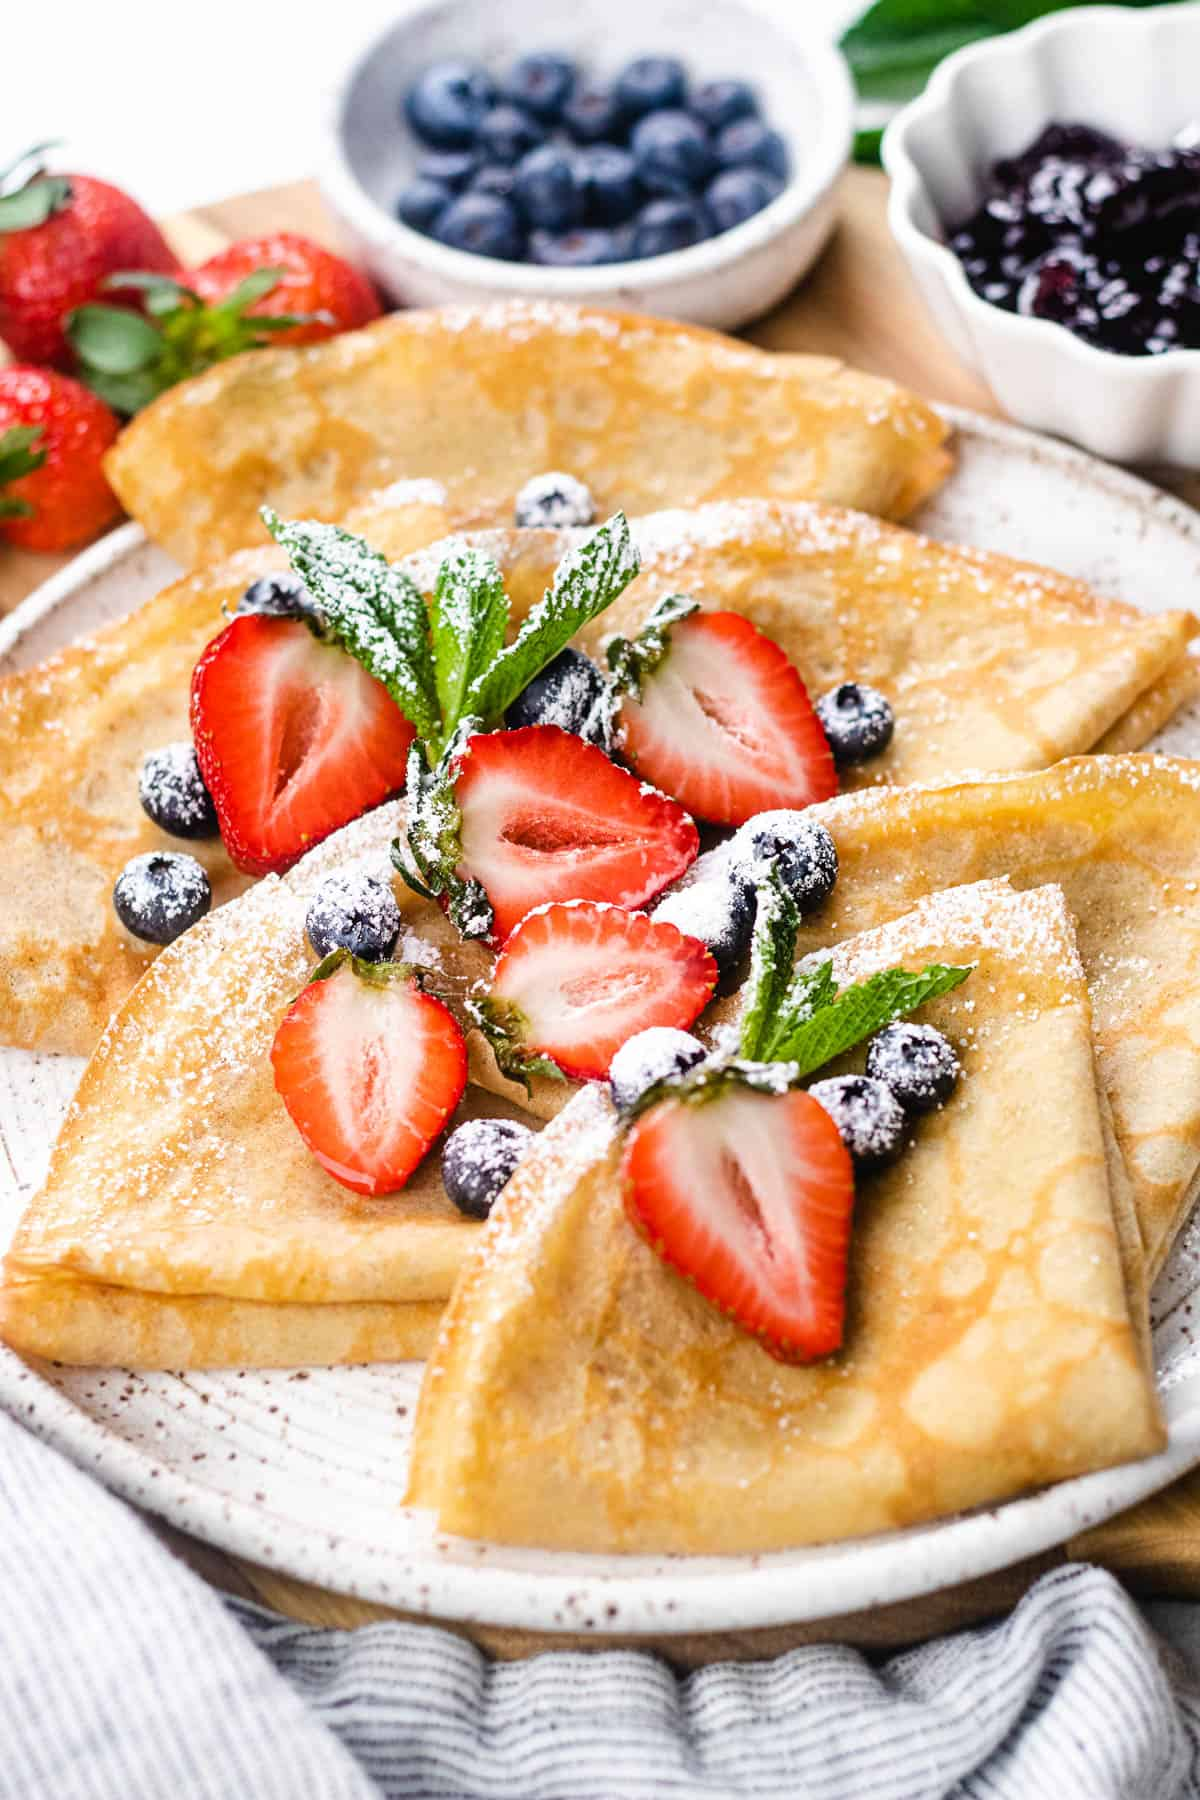 Folded crepes, topped with berries and powdered sugar.